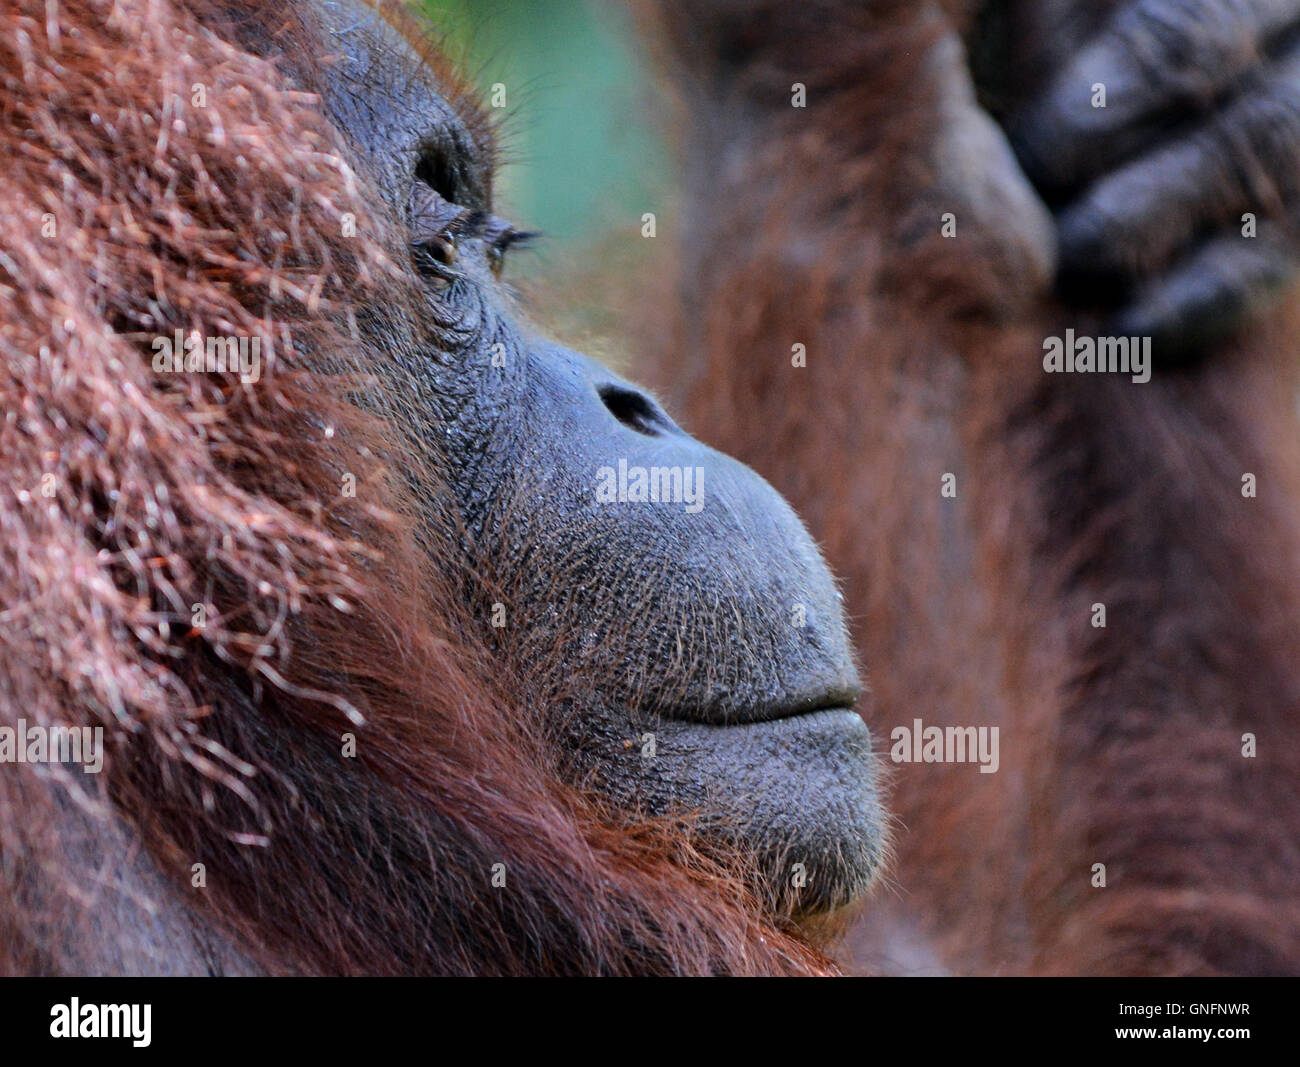 Portrait of an Orangutan taken in the forest at the Semenggoh nature reserve near Kuching. - Stock Image